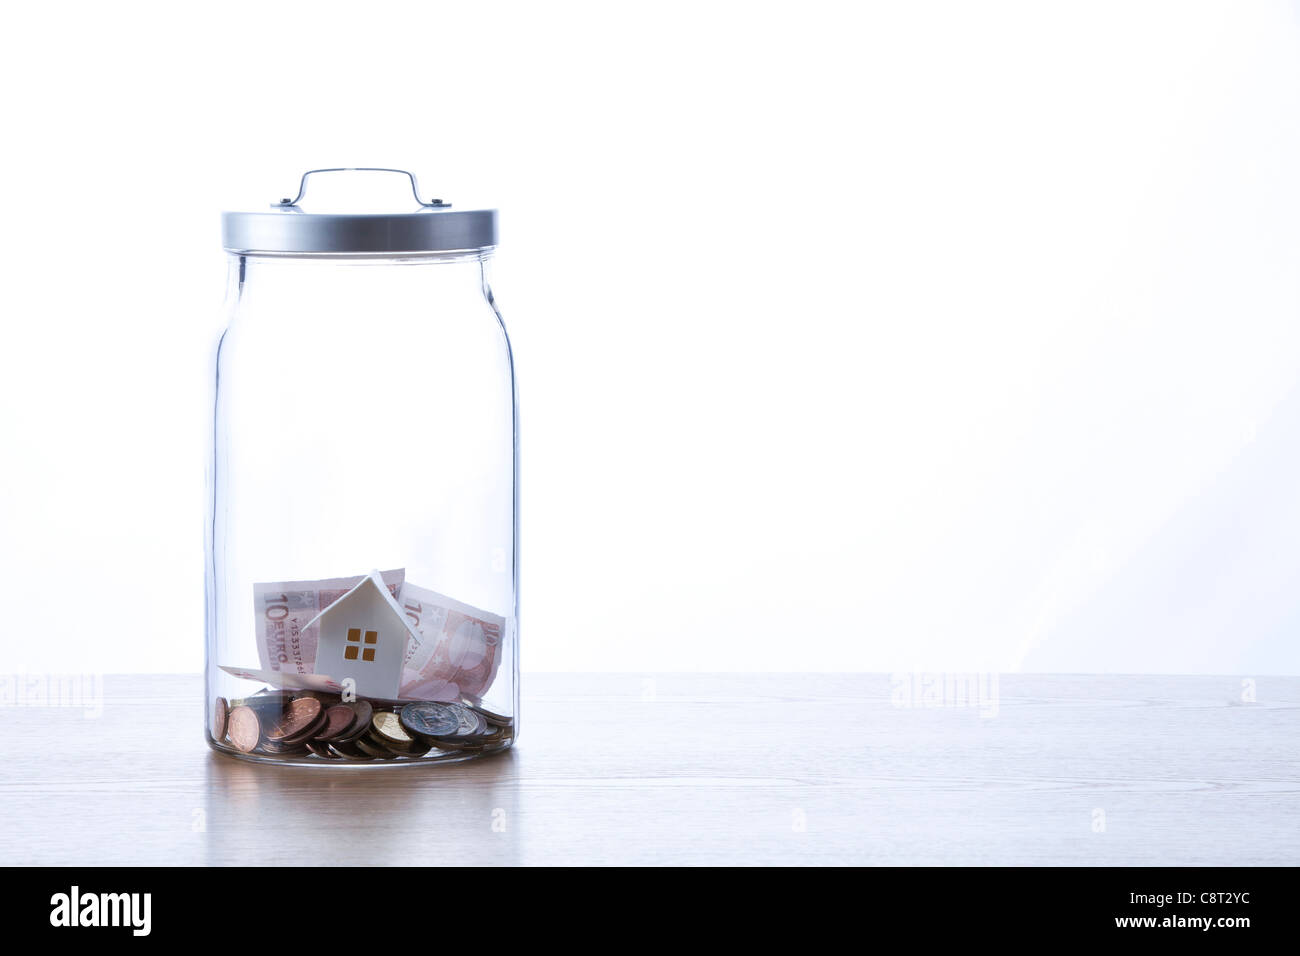 European union currency and model house inside of glass jar - Stock Image